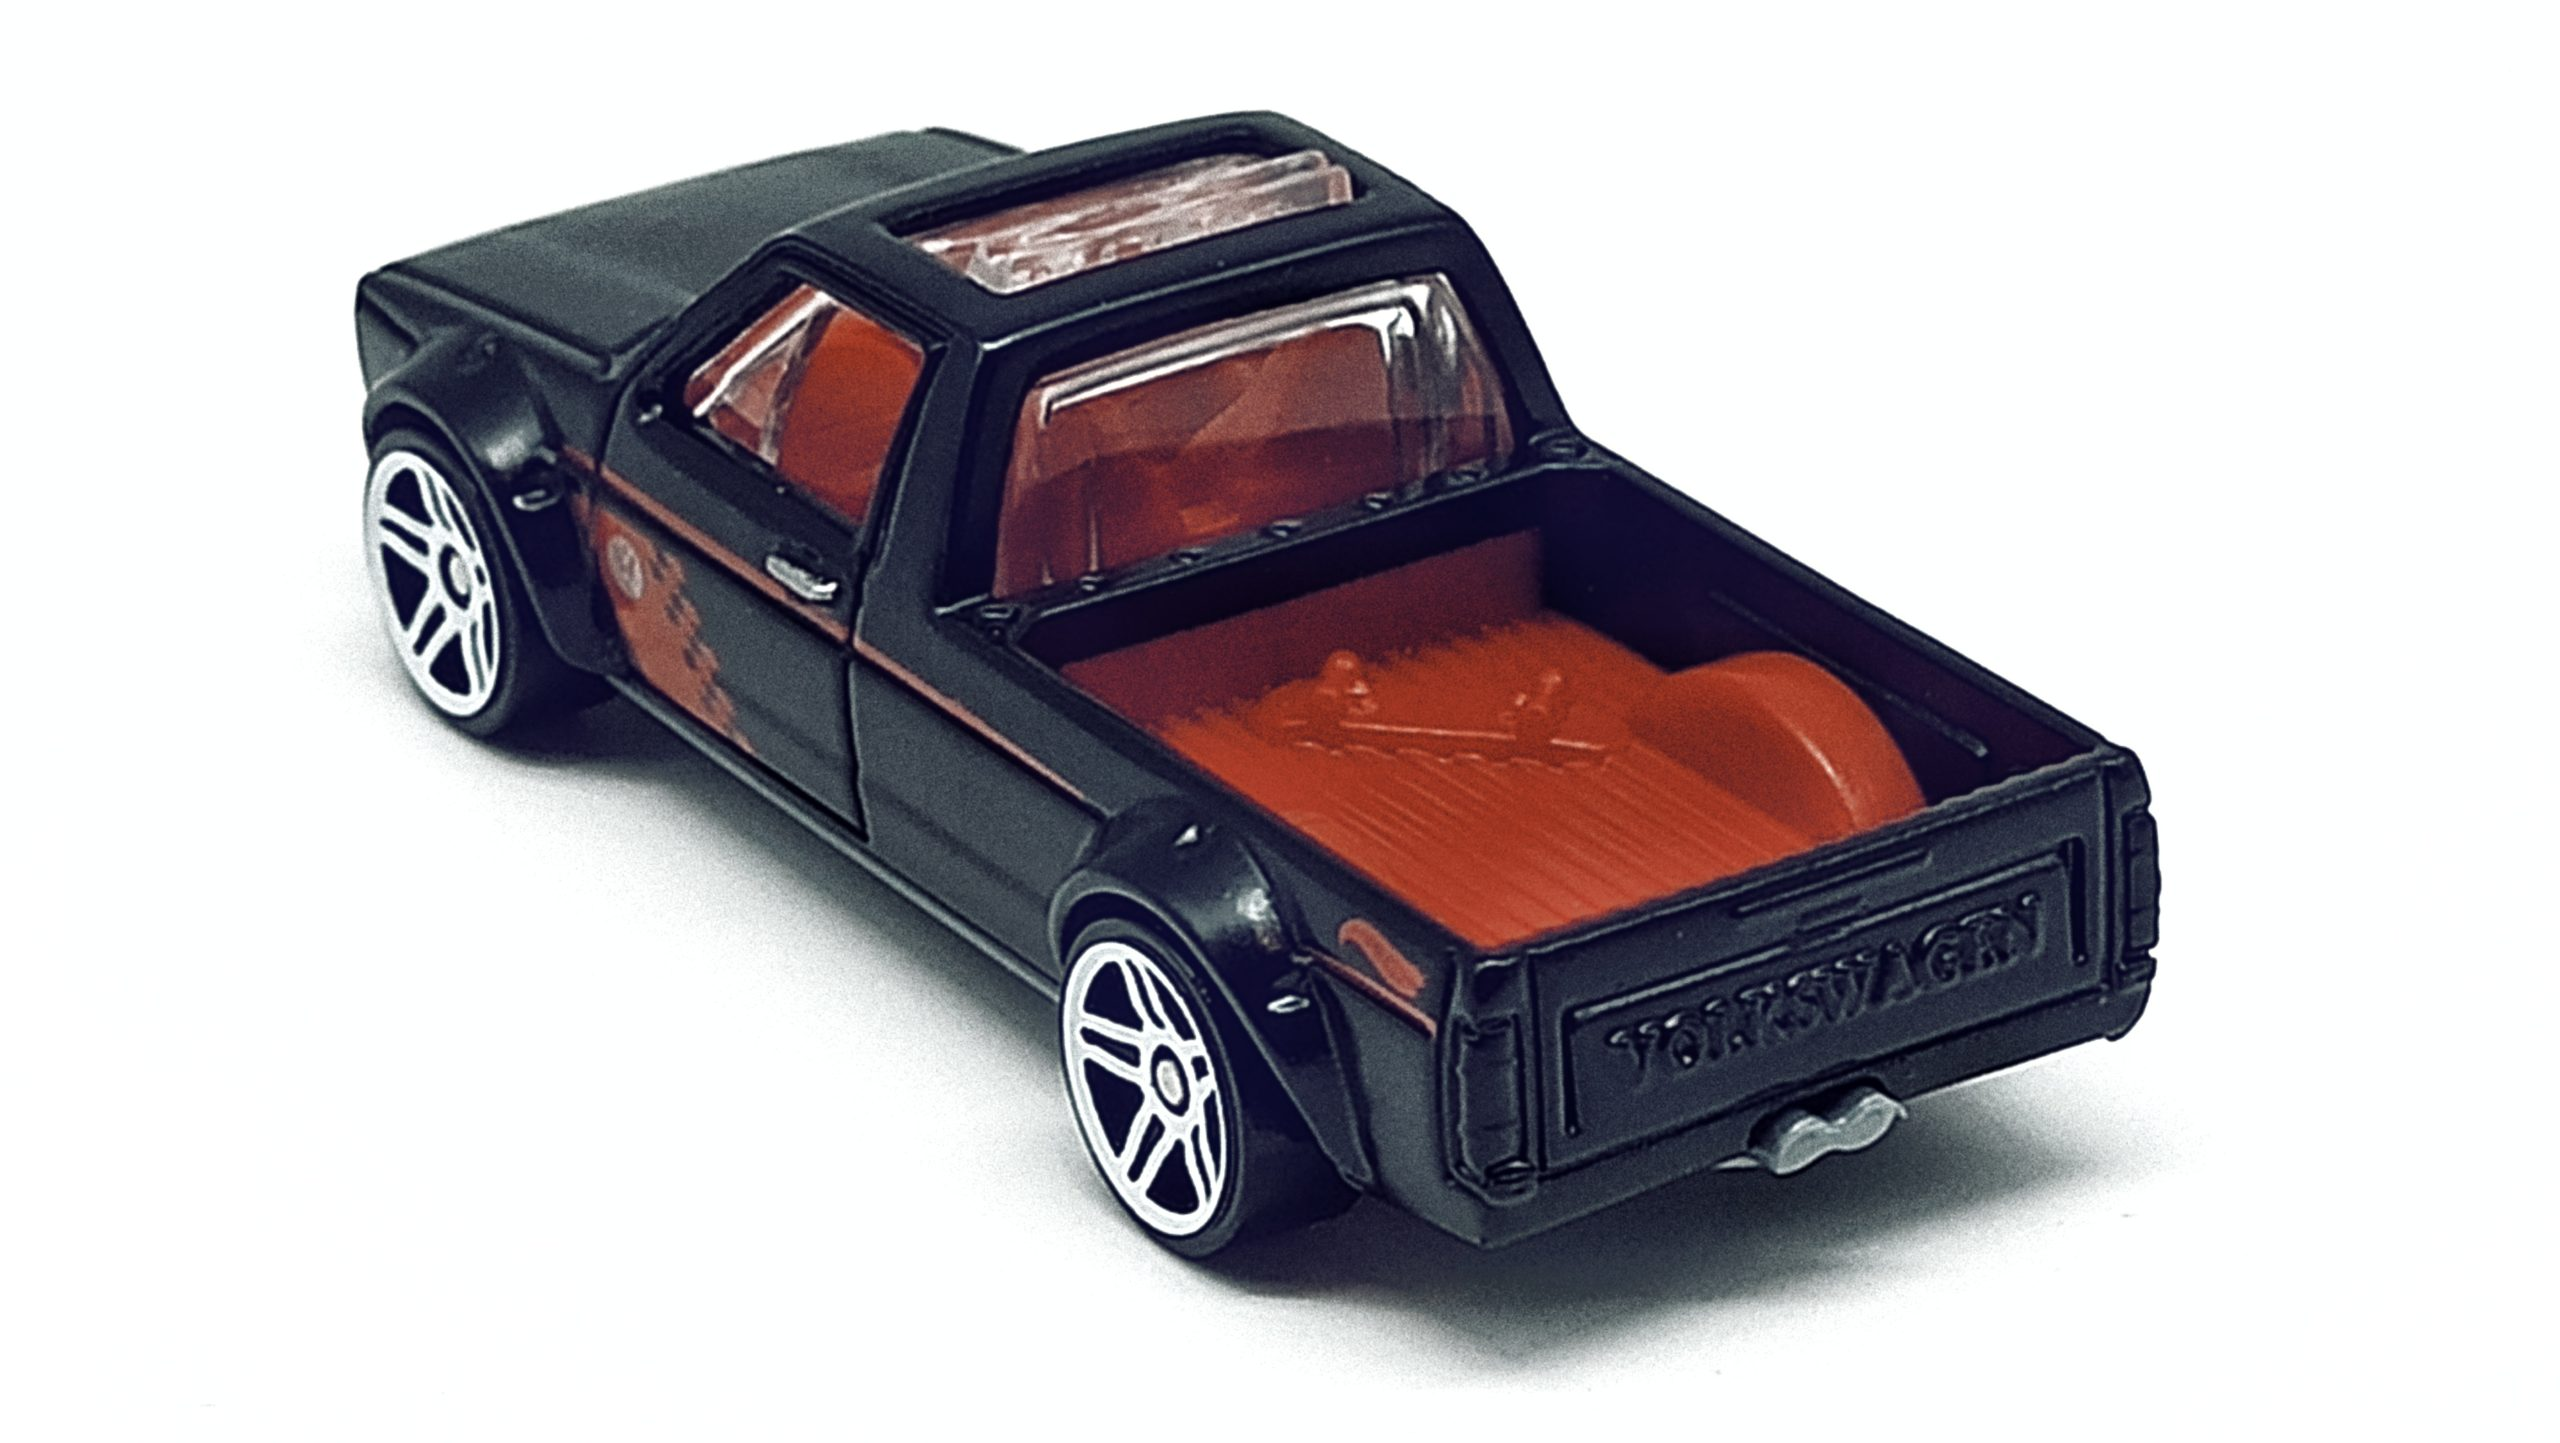 Hot Wheels Volkswagen Caddy (FYG73) 2019 (177/250) Target Red Edition (12/12) VW black top angle